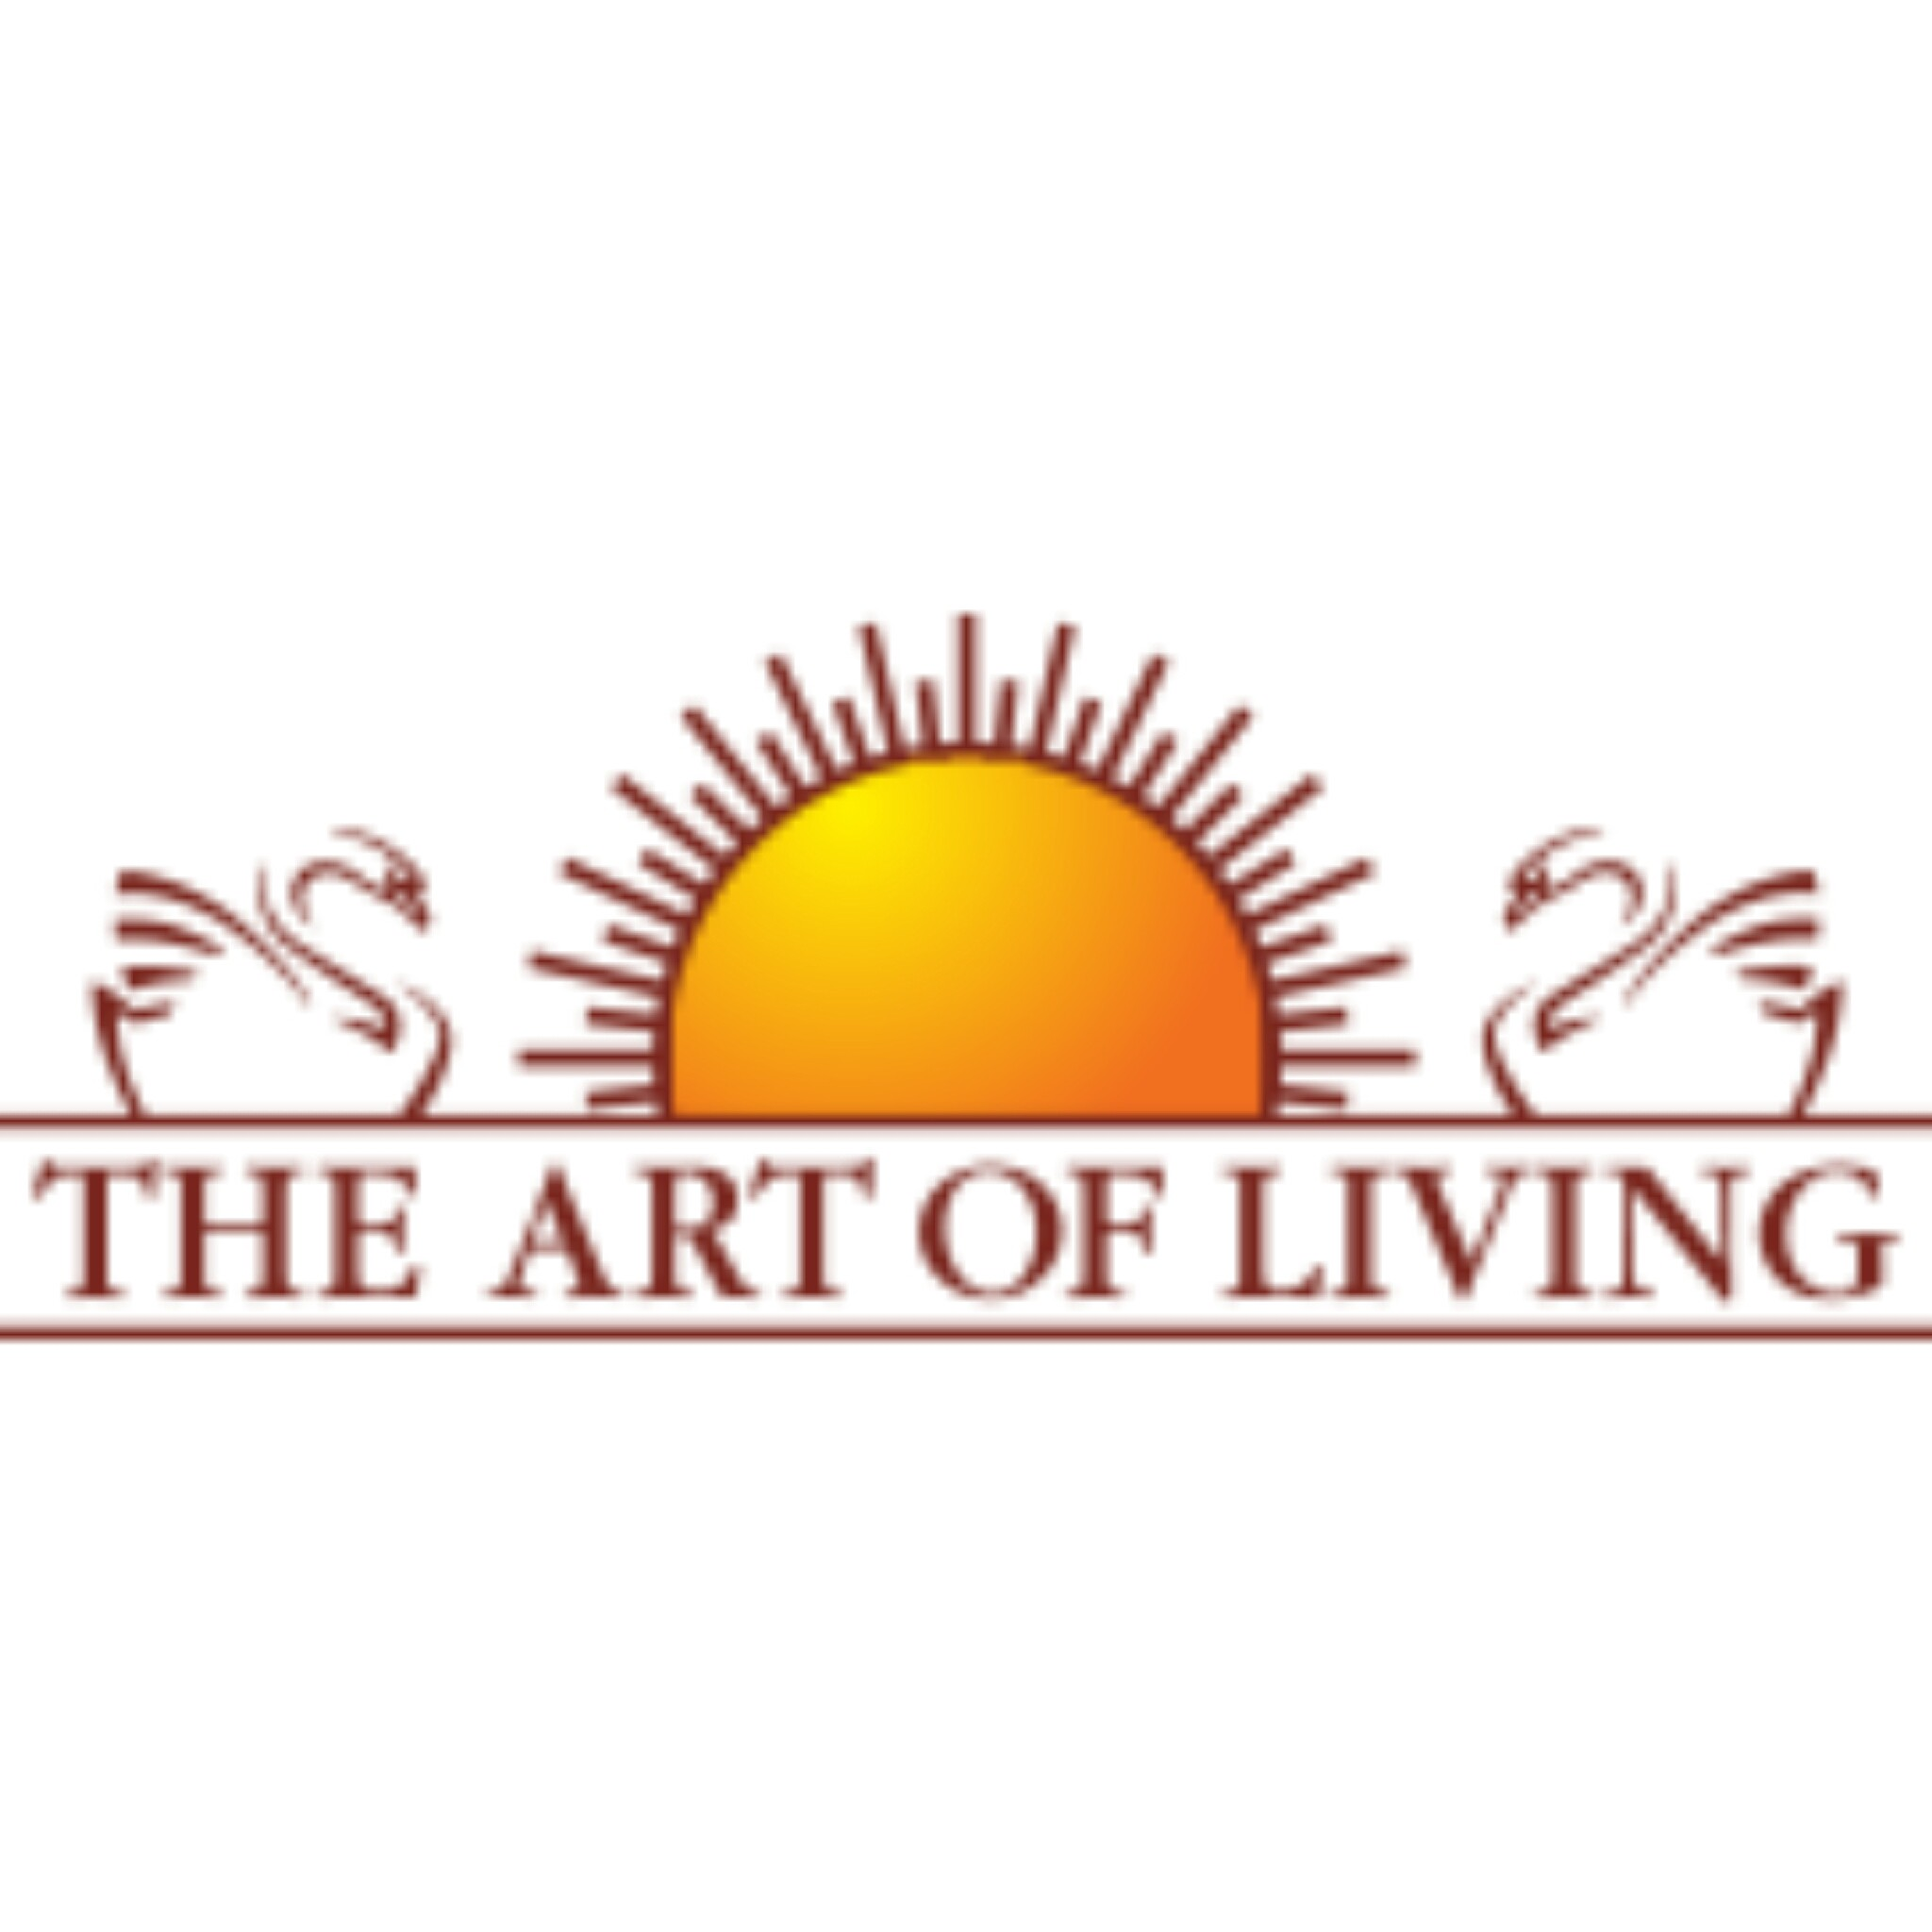 art of living foundation Art of living foundation today moved the national green tribunal challenging the appointment of an expert committee for inspection of site on yamuna floodplains where a.